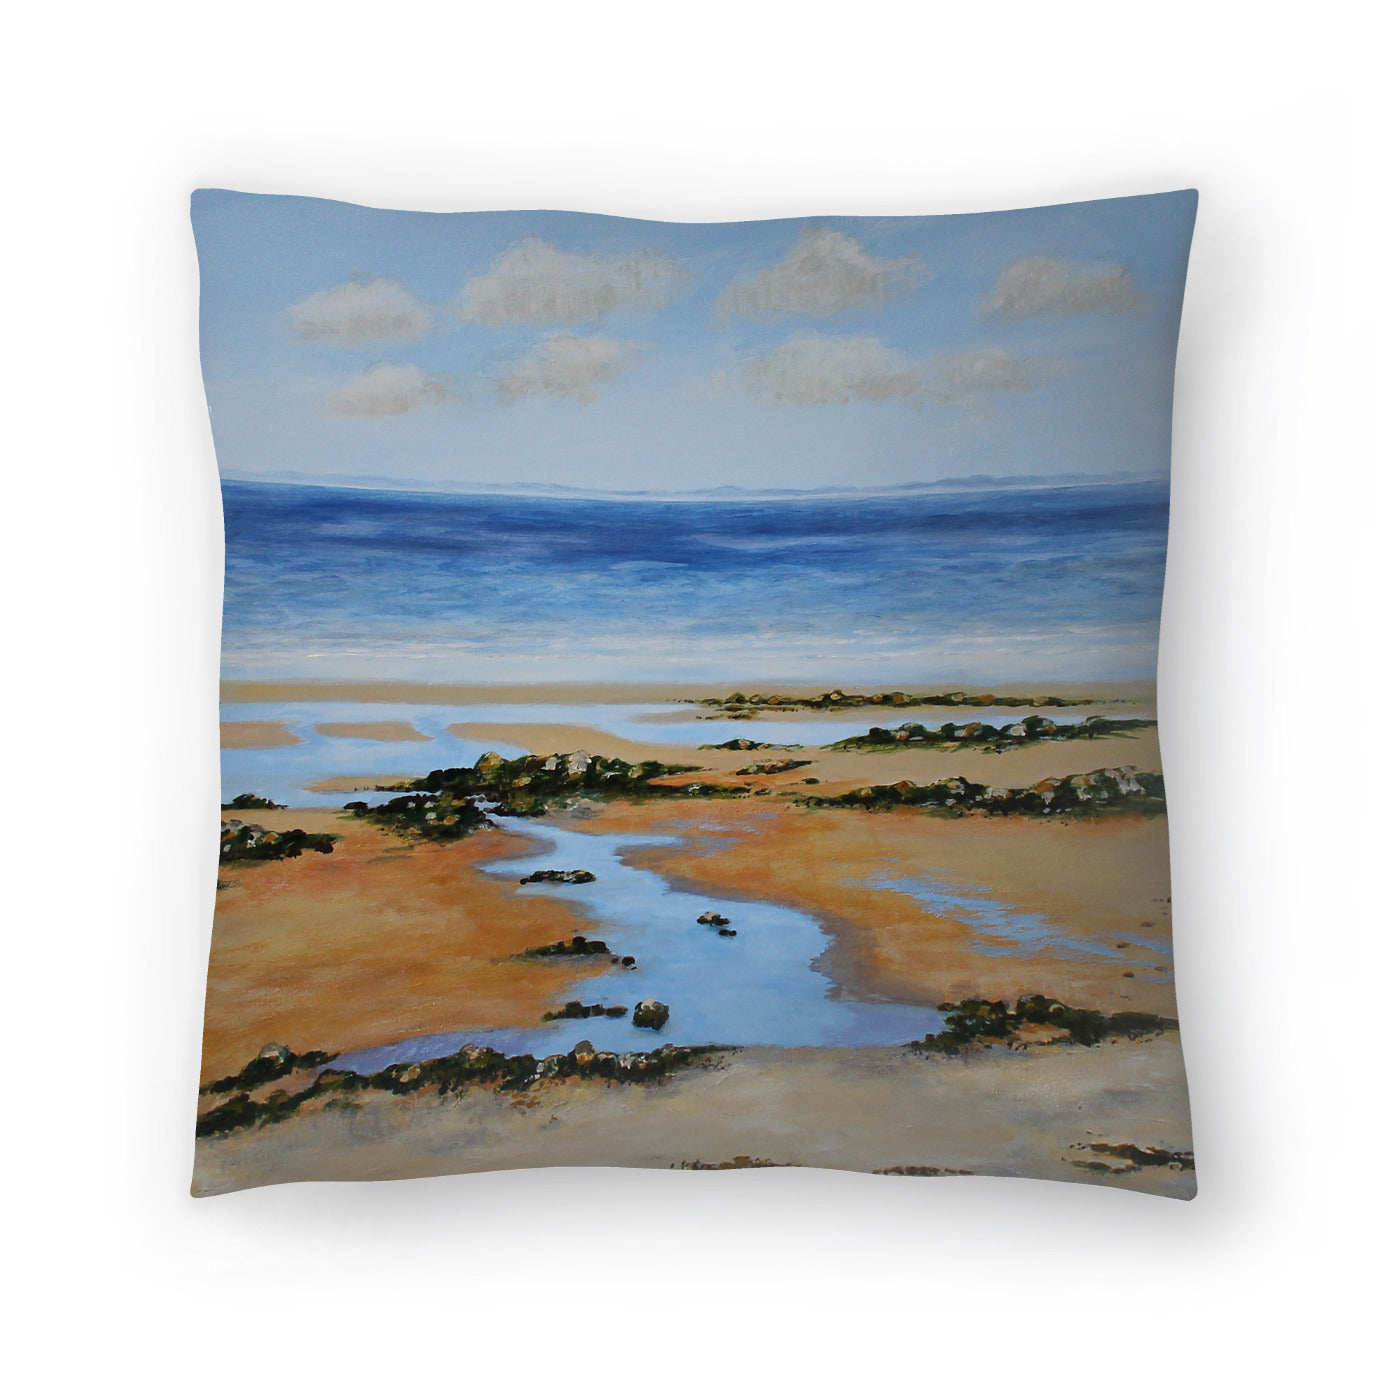 Seaweed On Rocks by Sandra Francis Decorative Pillow - Decorative Pillow - Americanflat